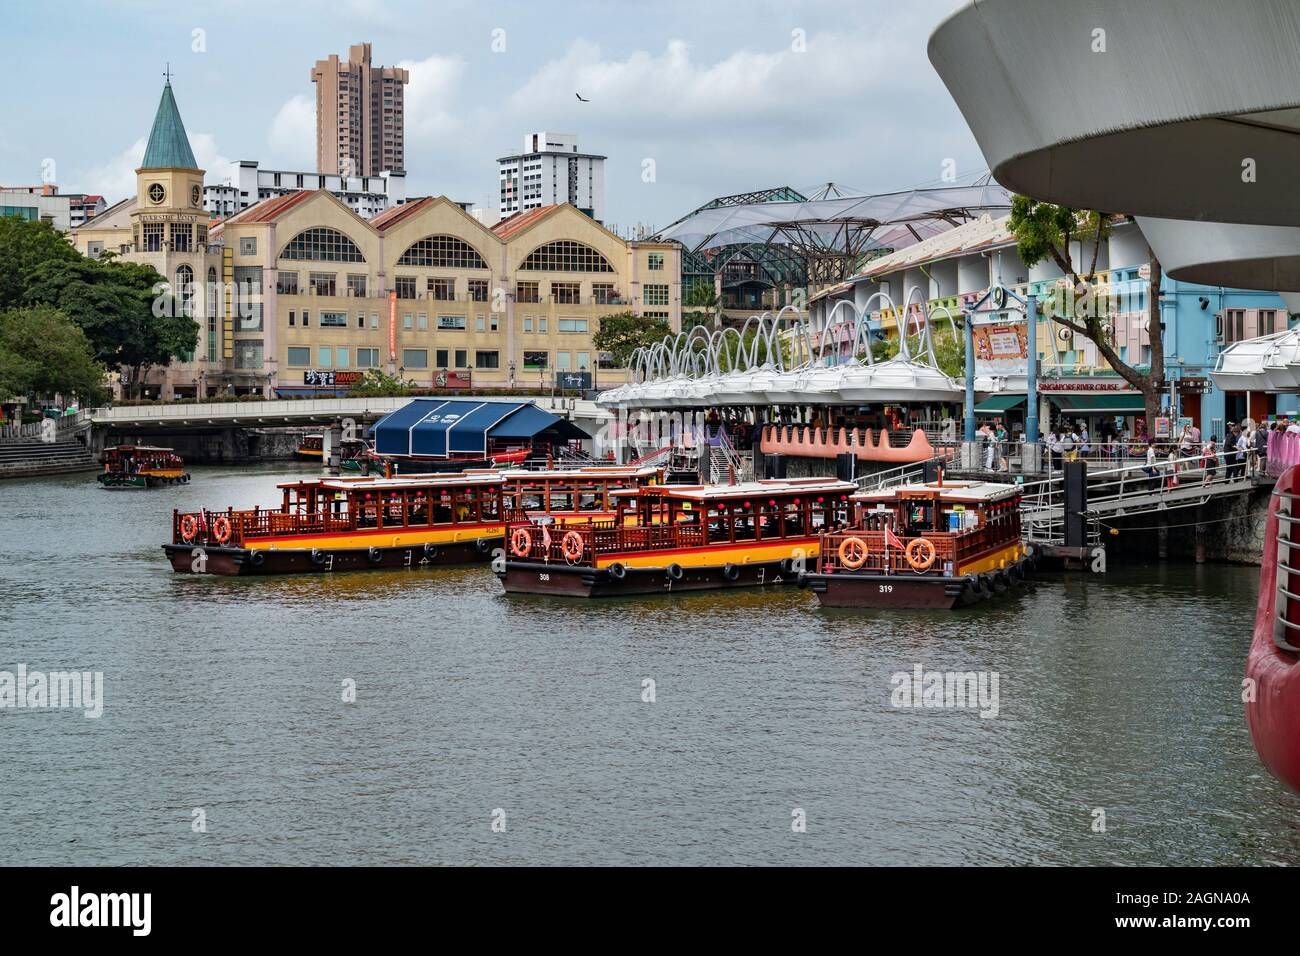 Tourist boats on the River Singapore at Clarke Quay, Singapore Stock Photo